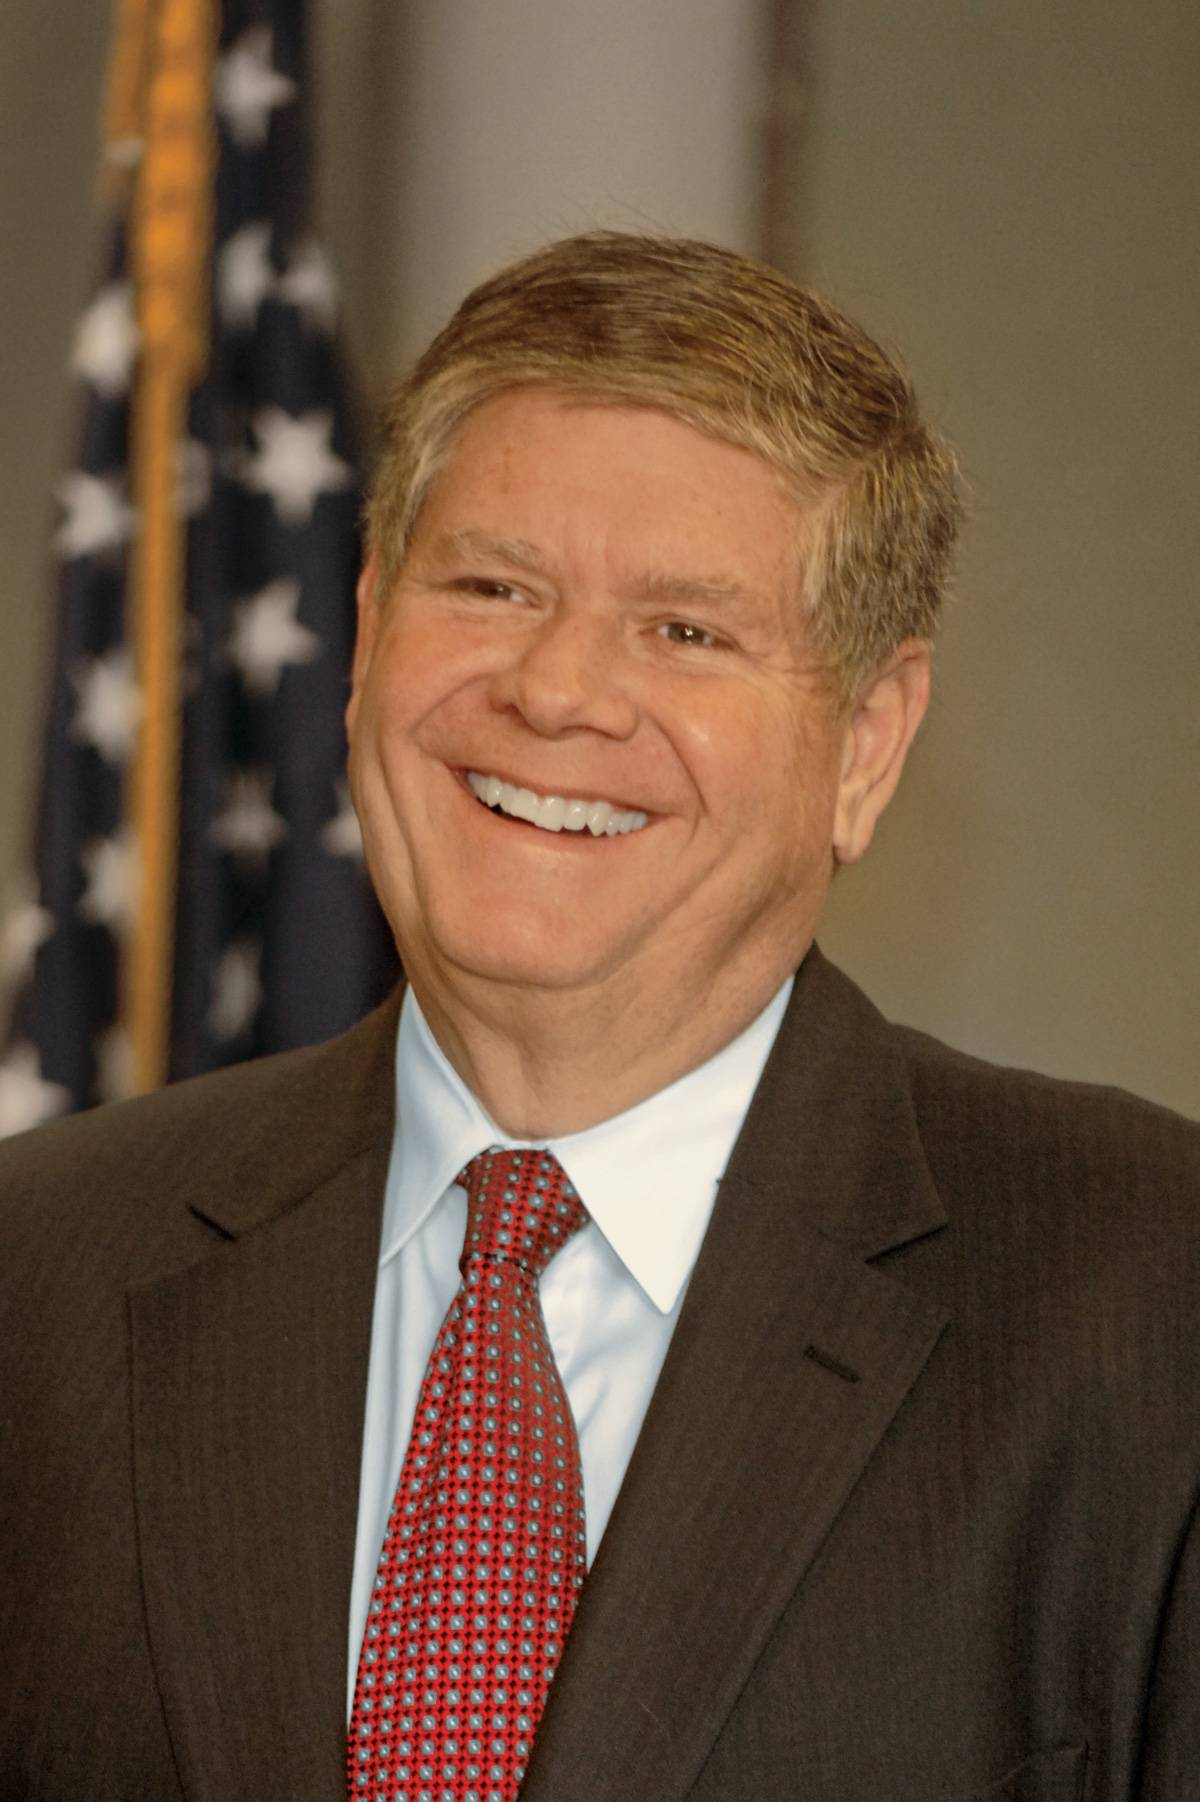 Jim Oberweis Republican candidate for Senate.